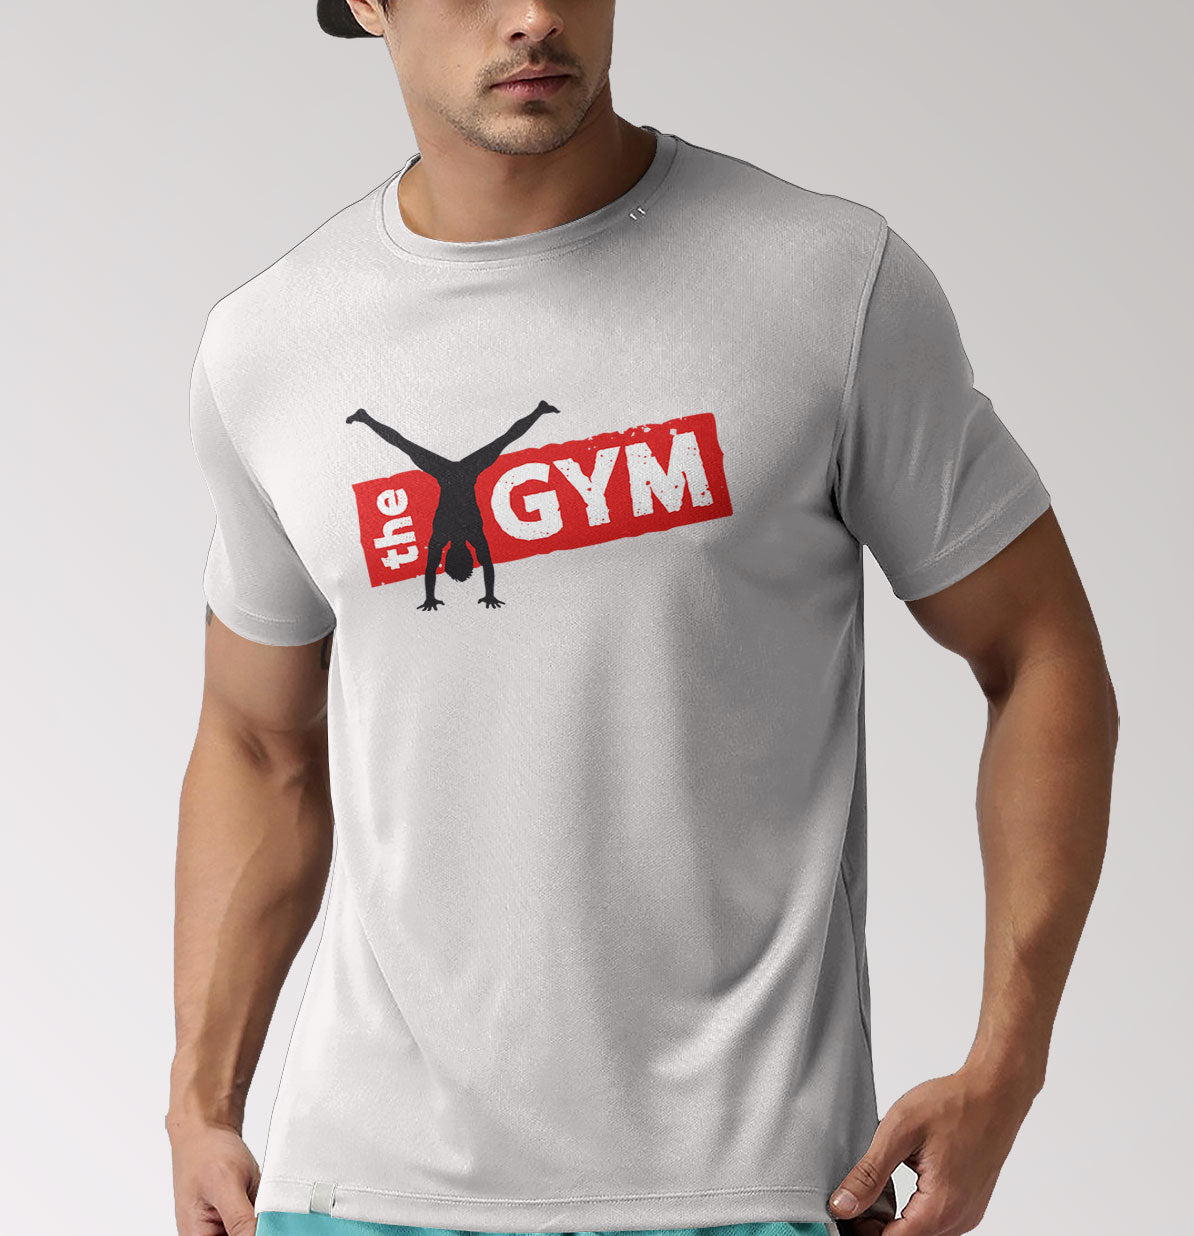 The Gym T-Shirt